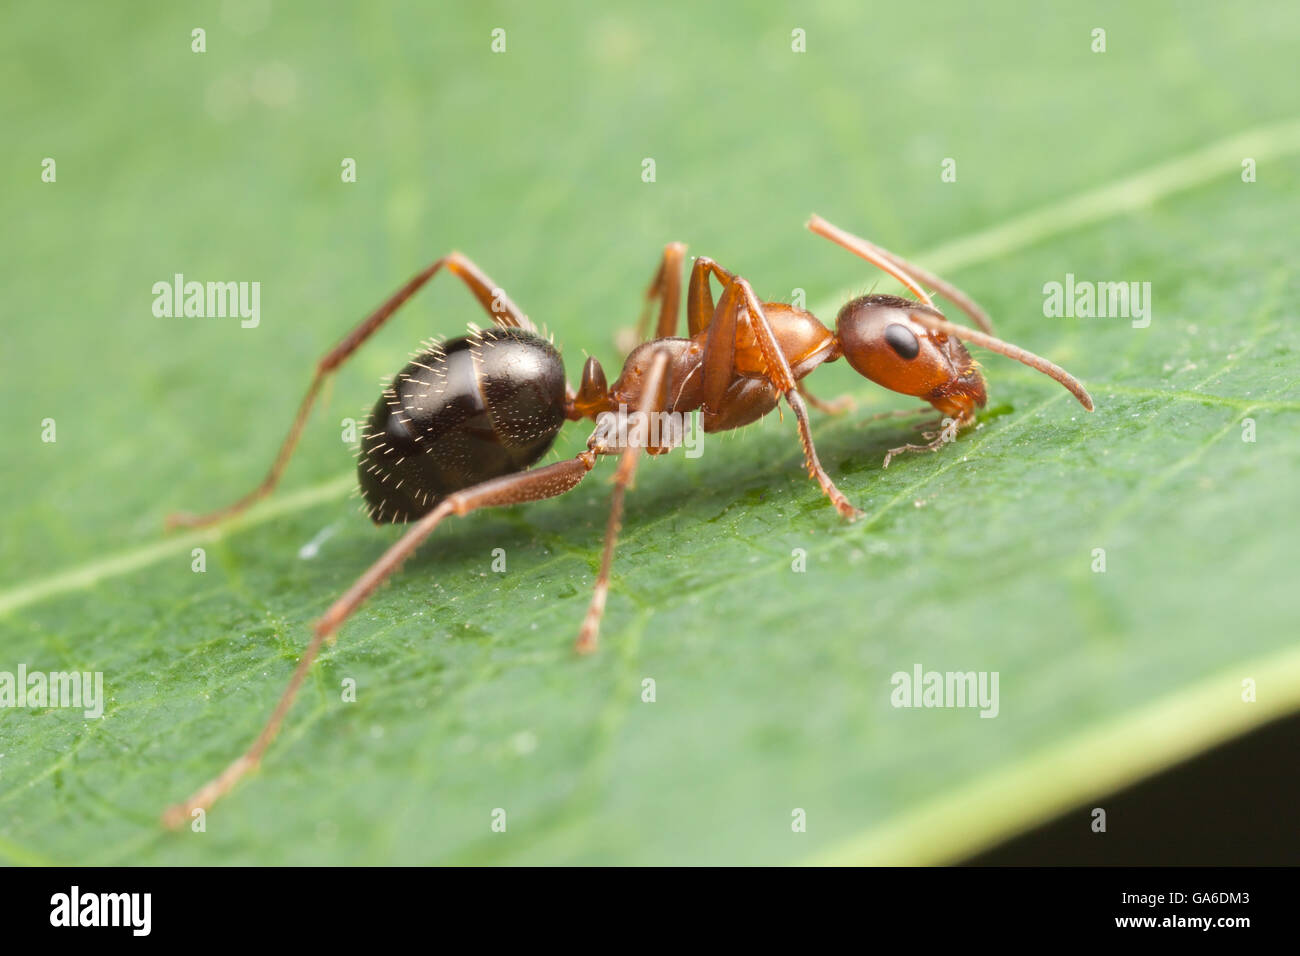 An Ant (Formica incerta) forages on a leaf. - Stock Image